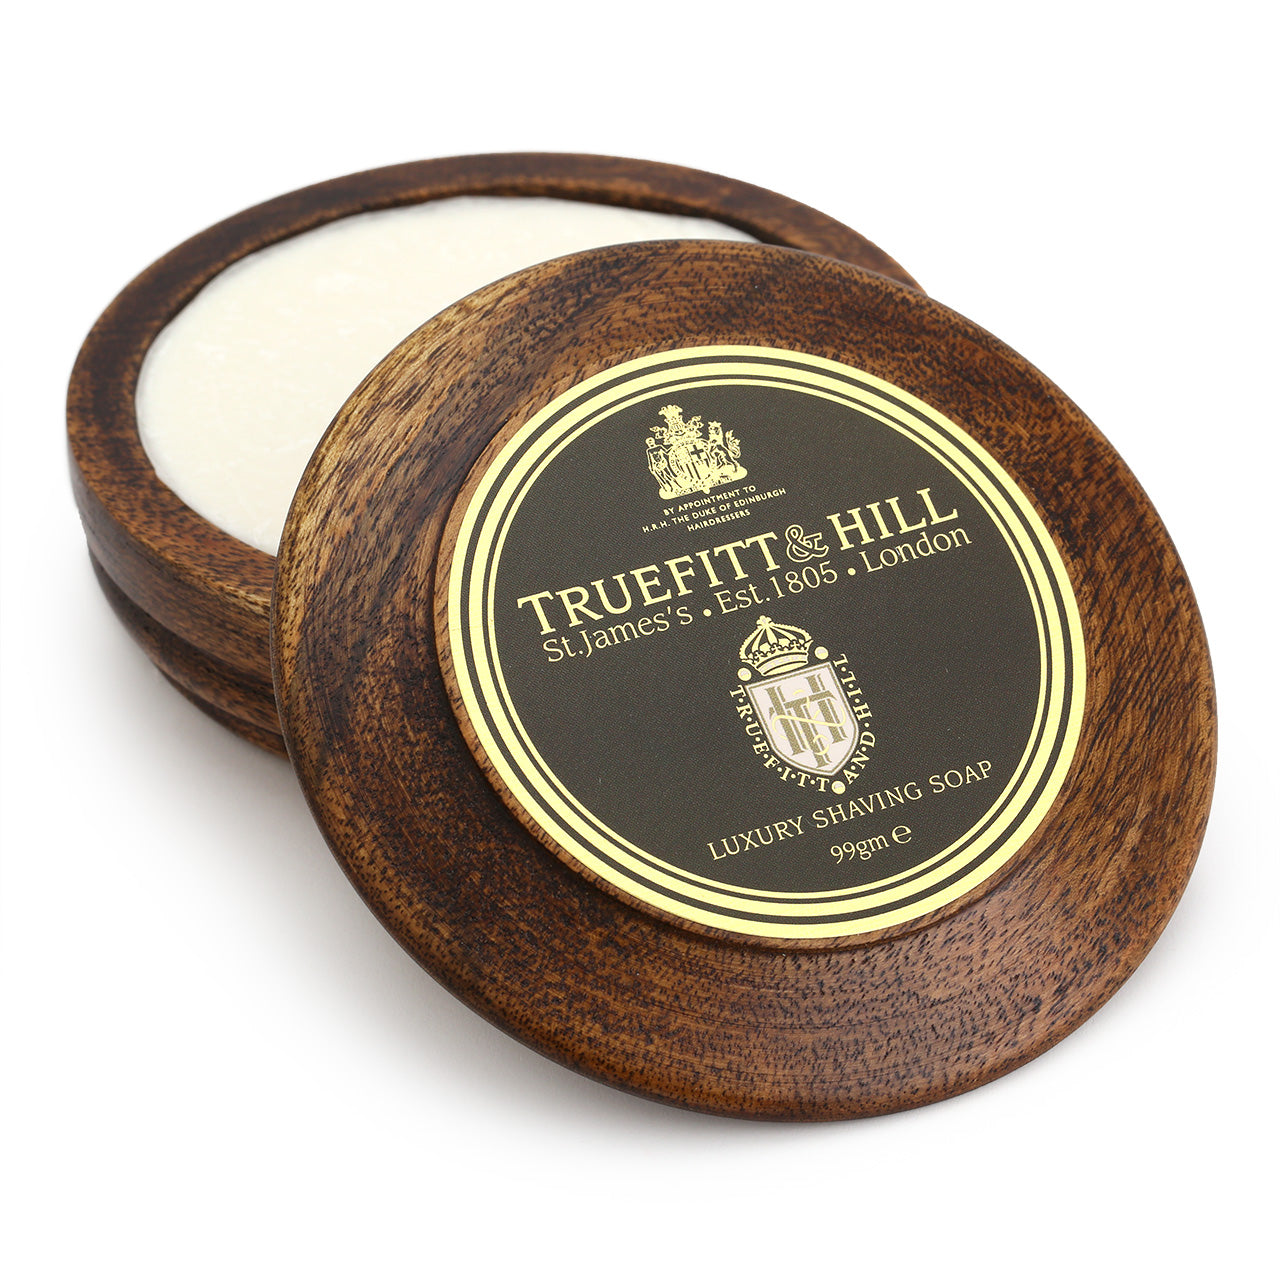 Truefitt & Hill Luxury shaving soap in a wooden bowl